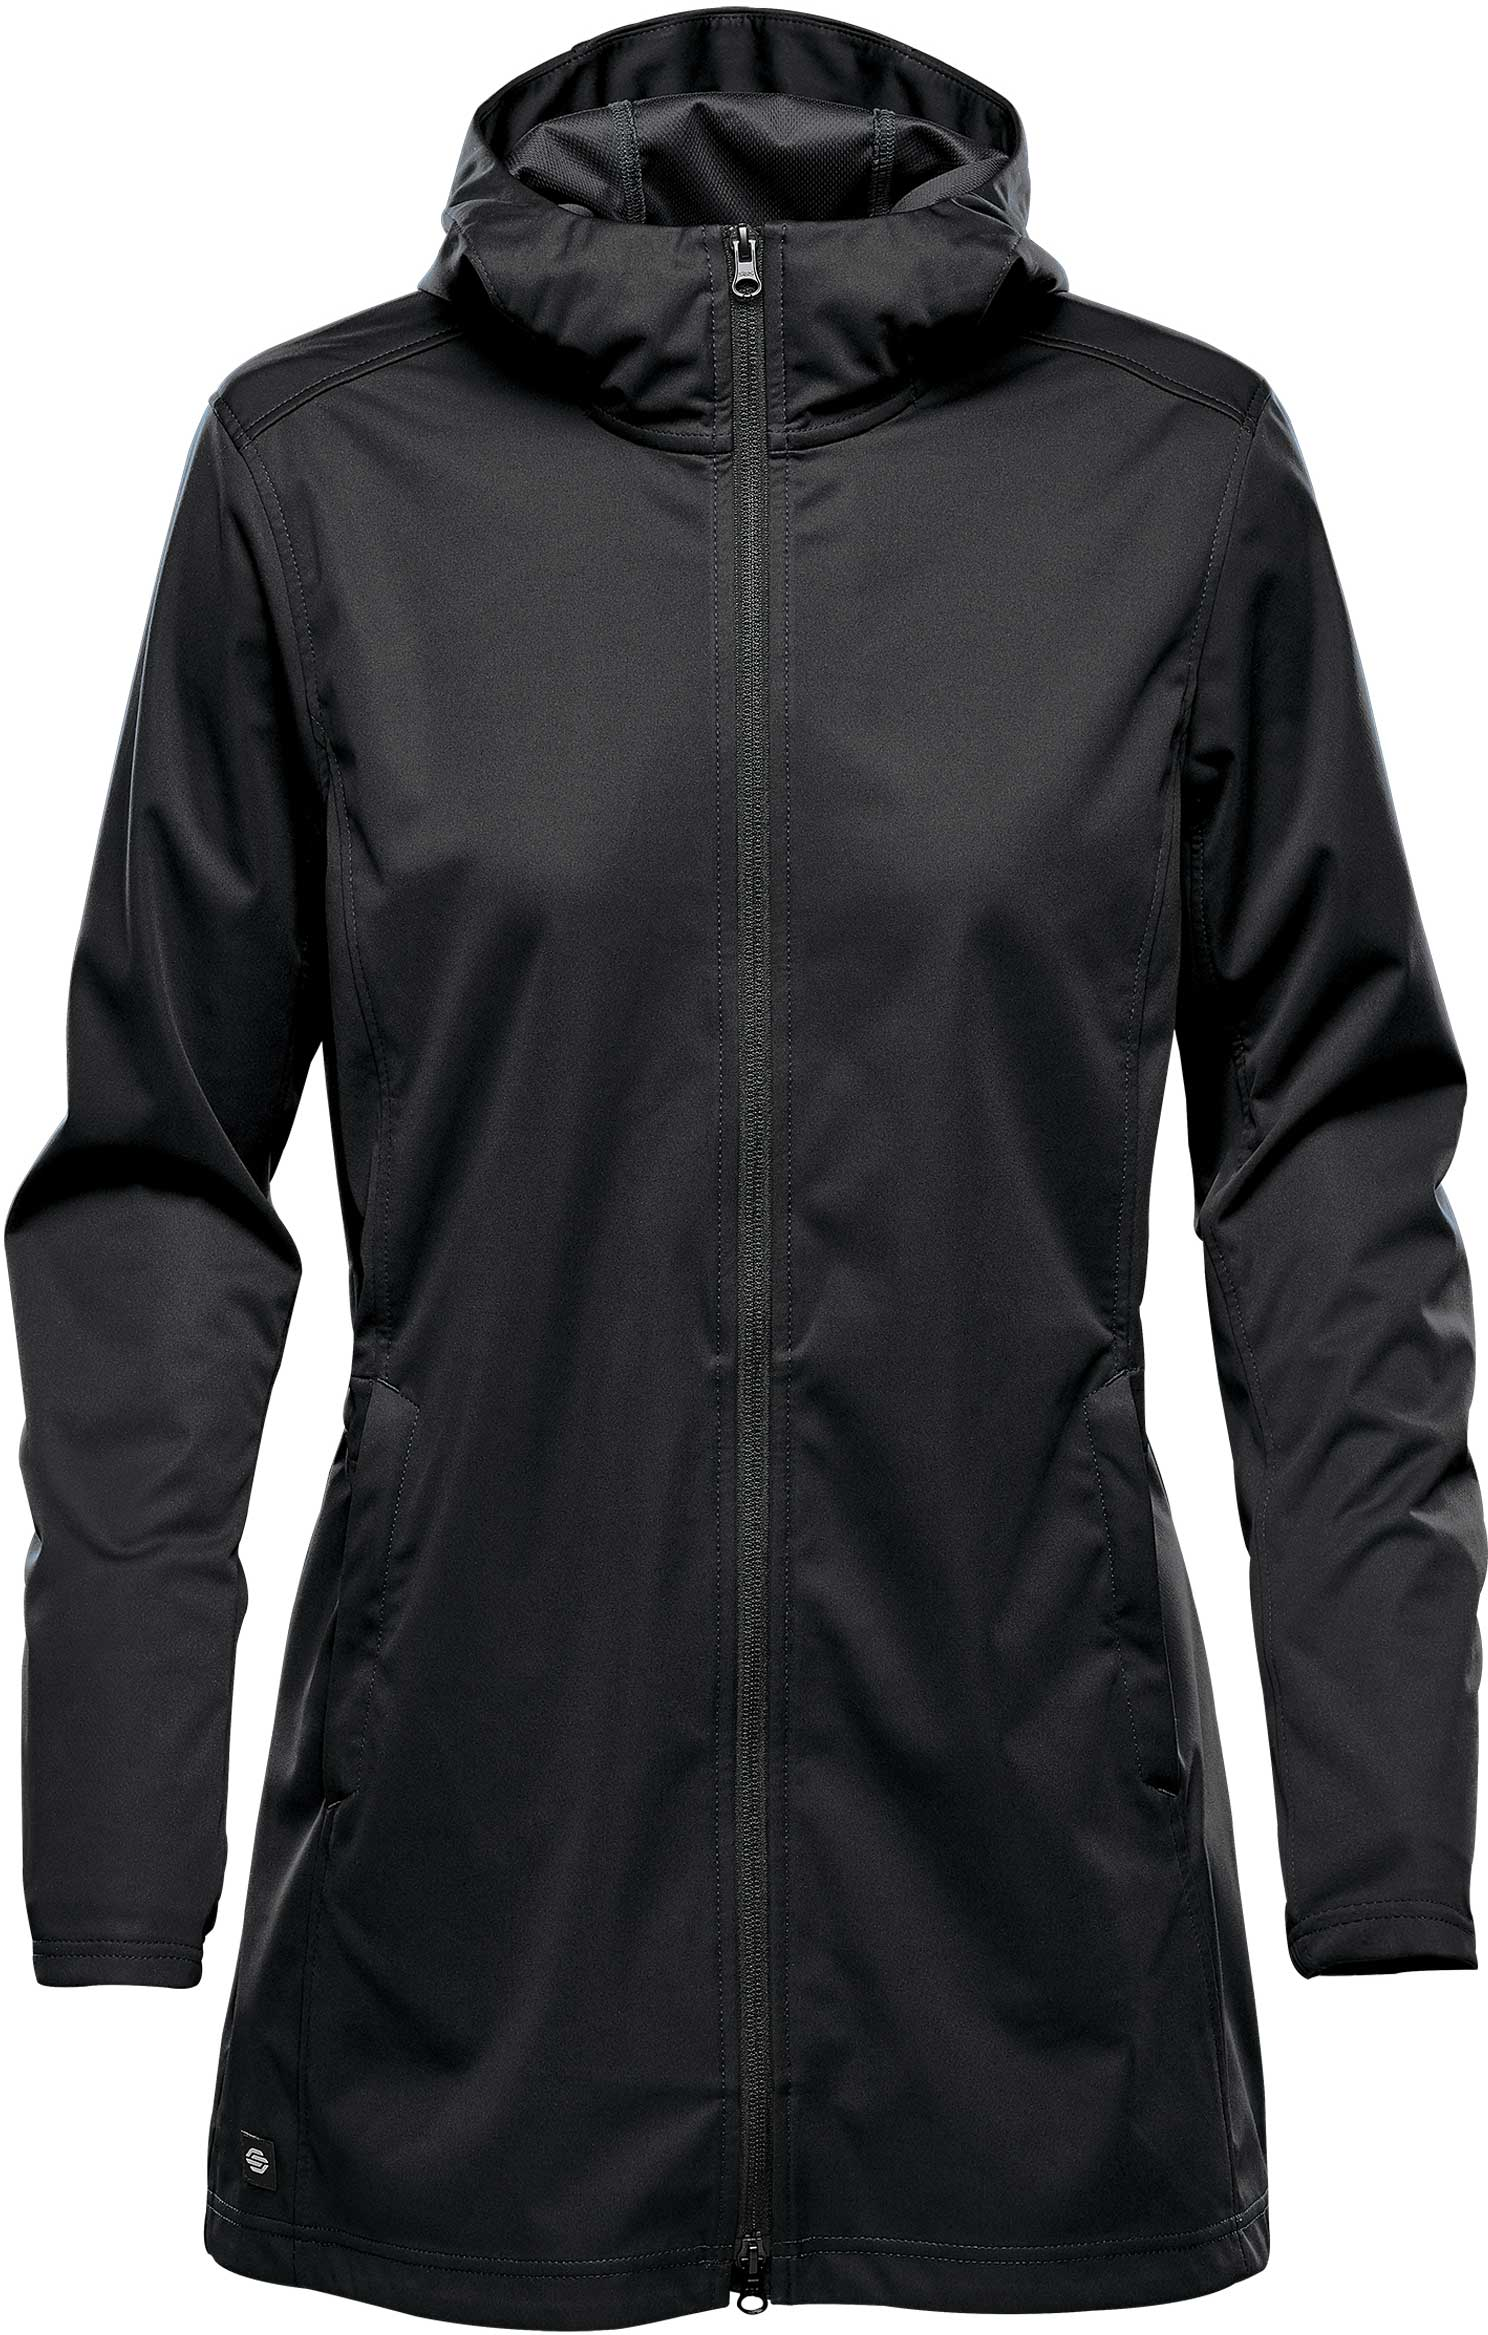 Picture of Stormtech Women's Belcarra Softshell Jacket